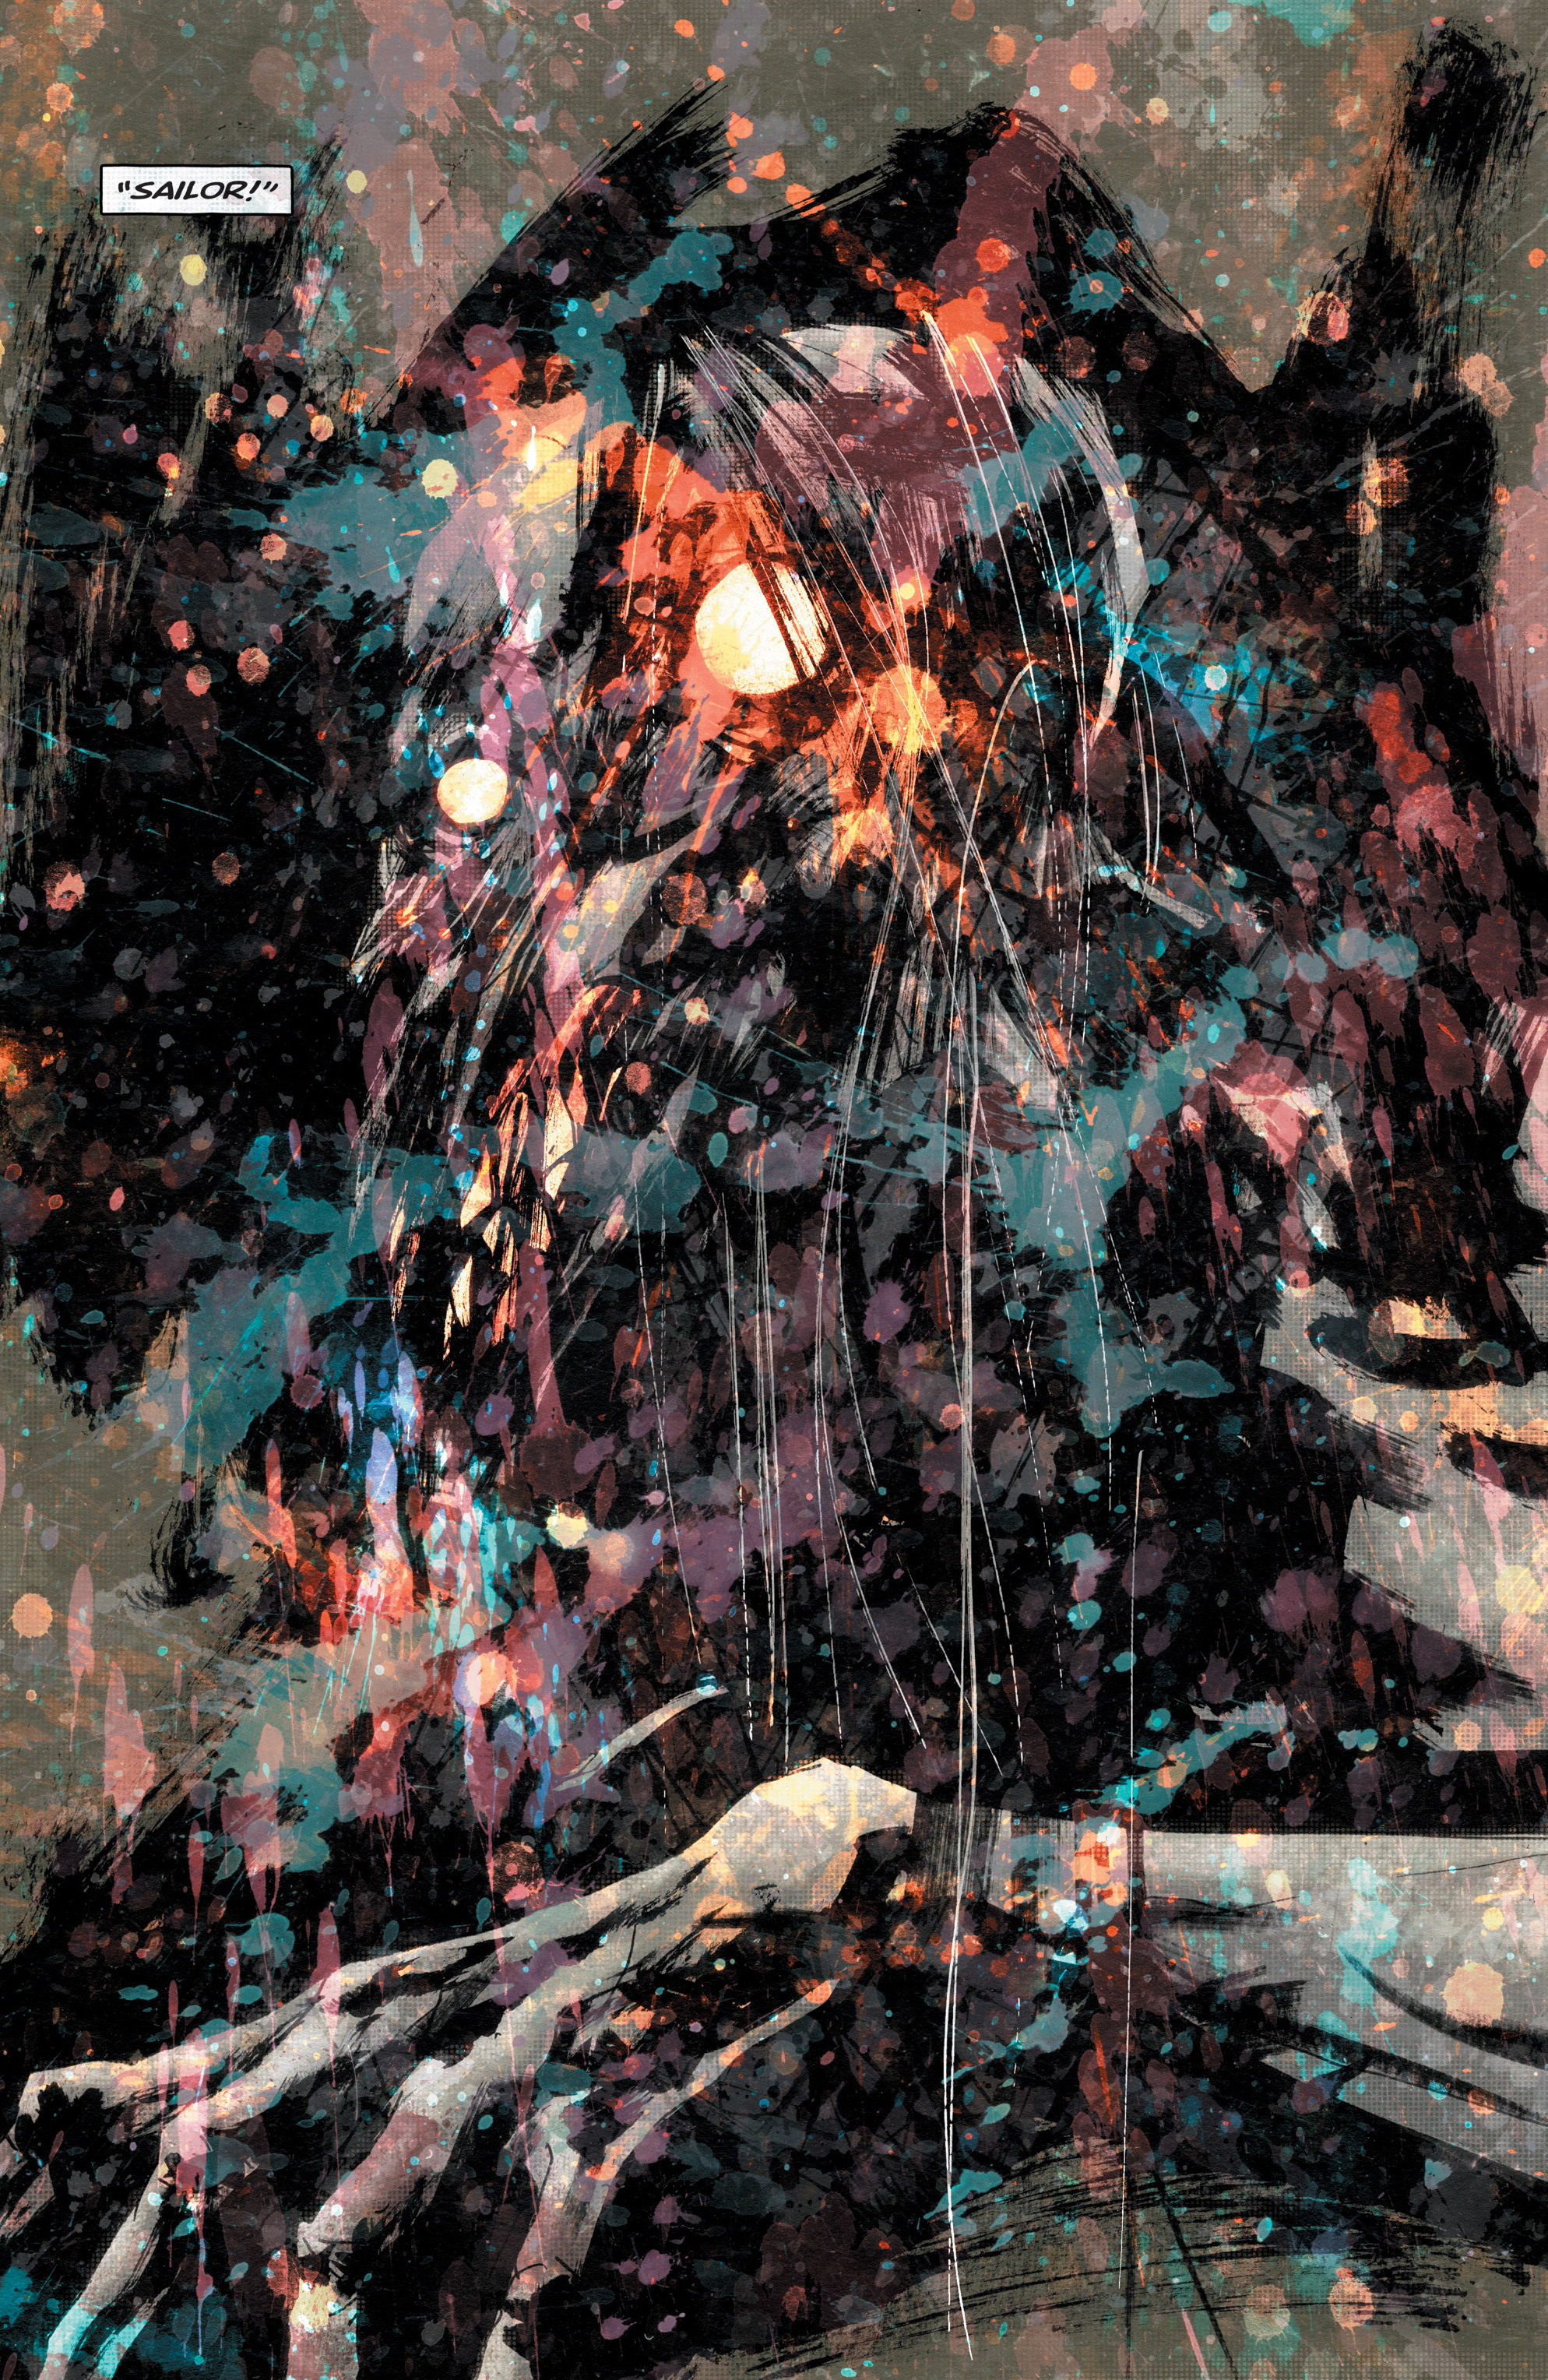 Read online Wytches comic -  Issue #3 - 6